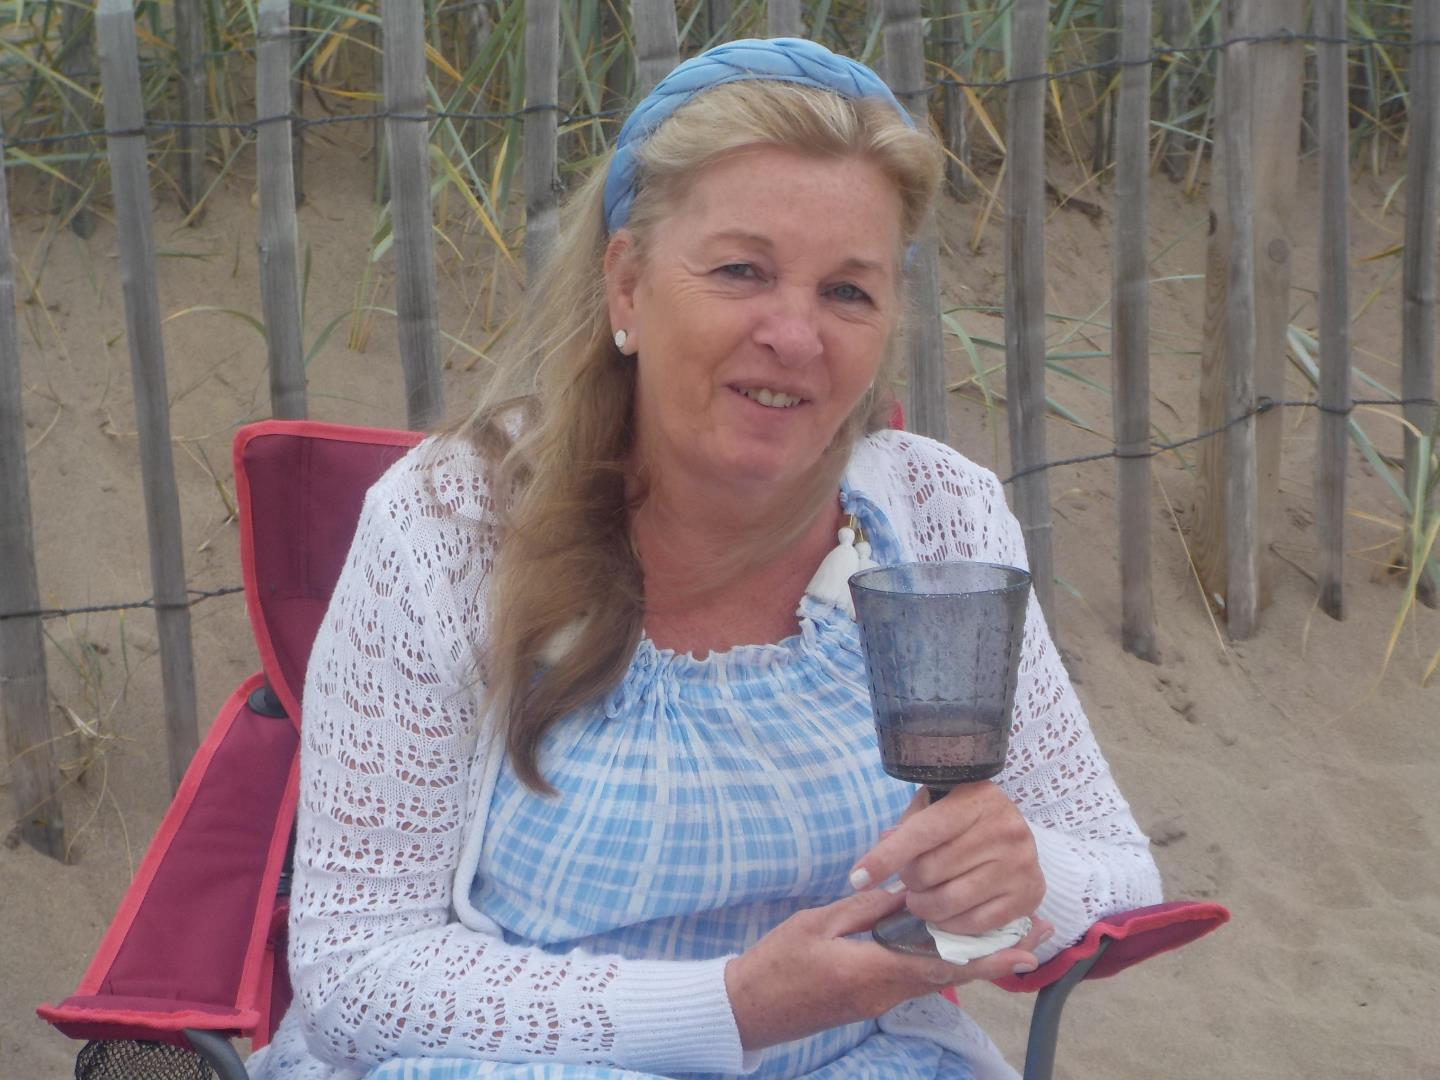 Margaret Binks with a drink in hand on Broughty Ferry beach